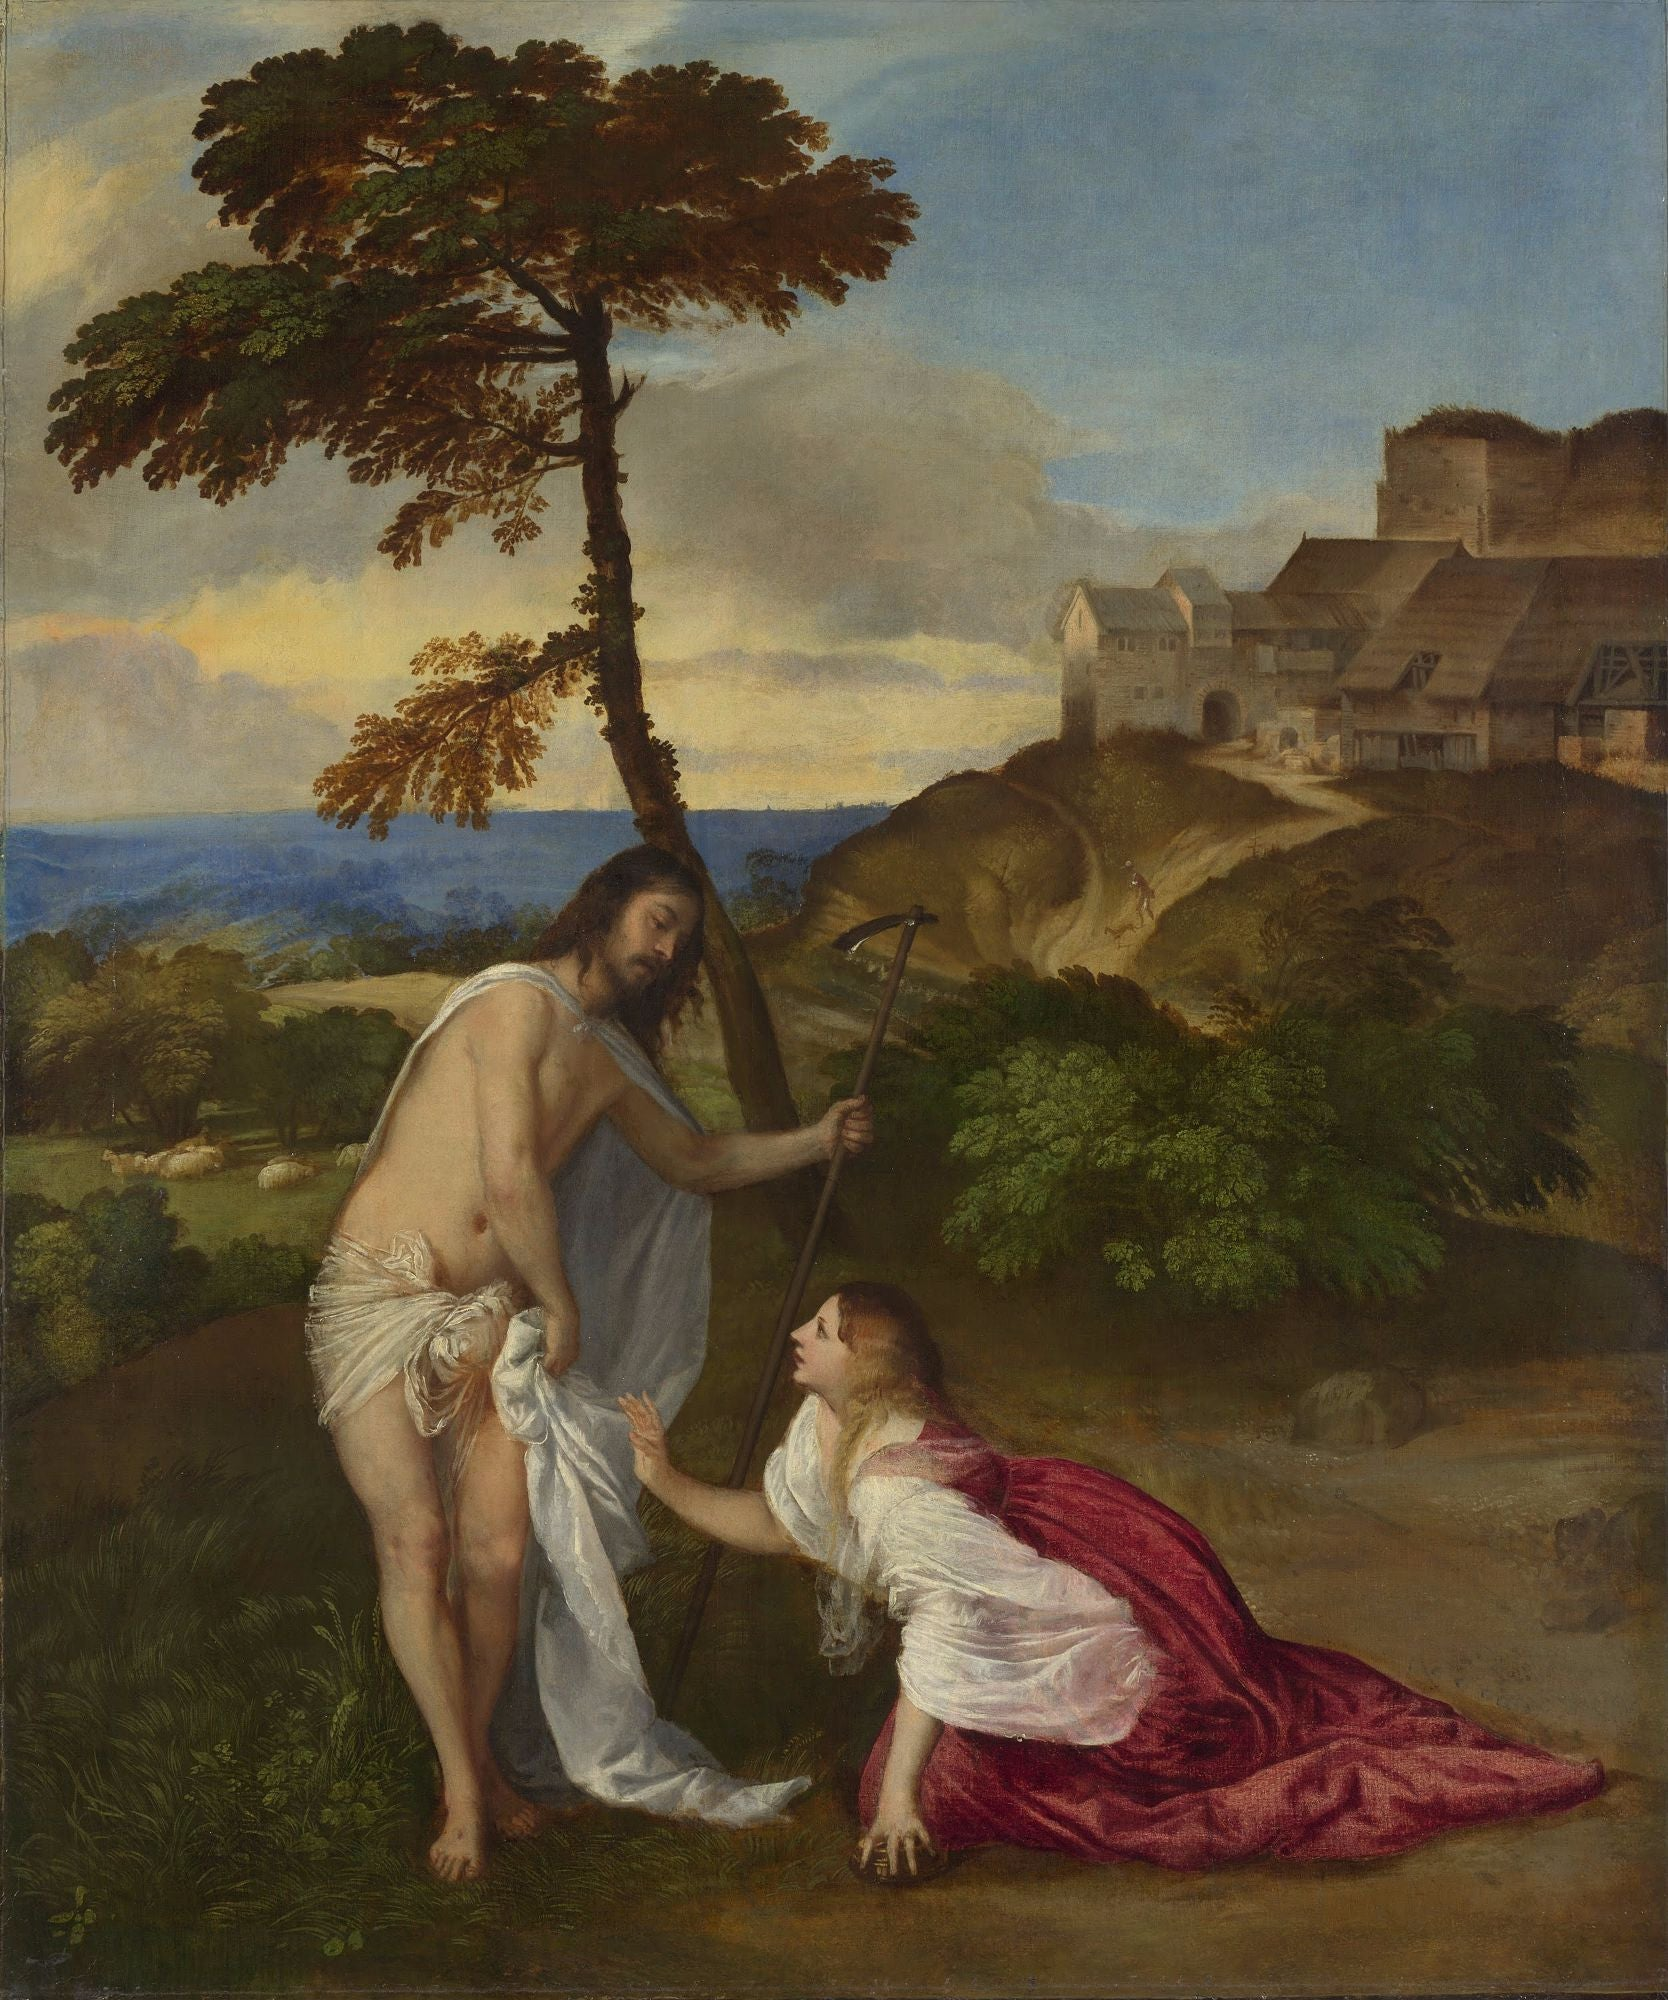 Titian | Buy Posters, Frames, Canvas, Digital Art & Large Size Prints Of The Famous Old Master's Artworks